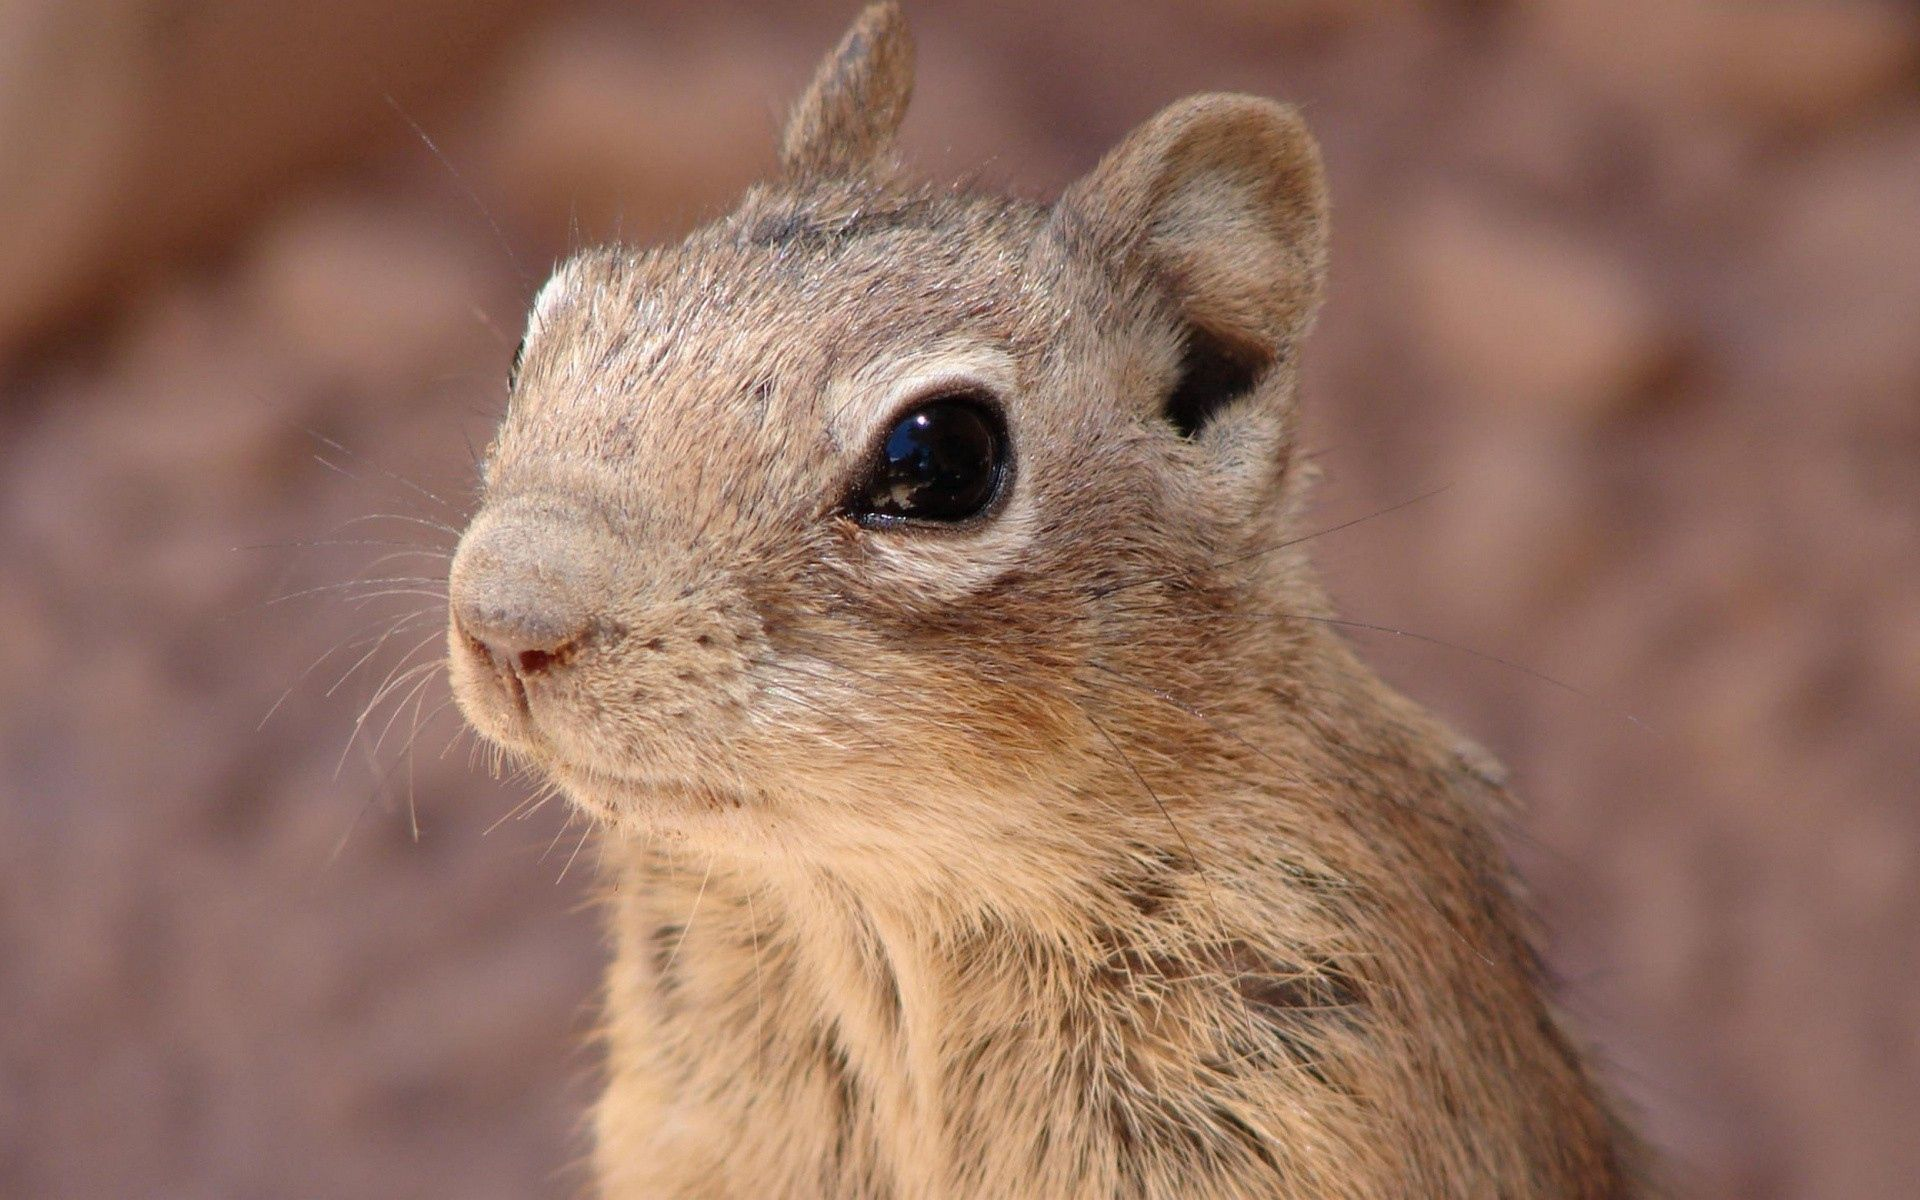 92580 download wallpaper Animals, Rodent, Gopher, Chipmunk, Face screensavers and pictures for free